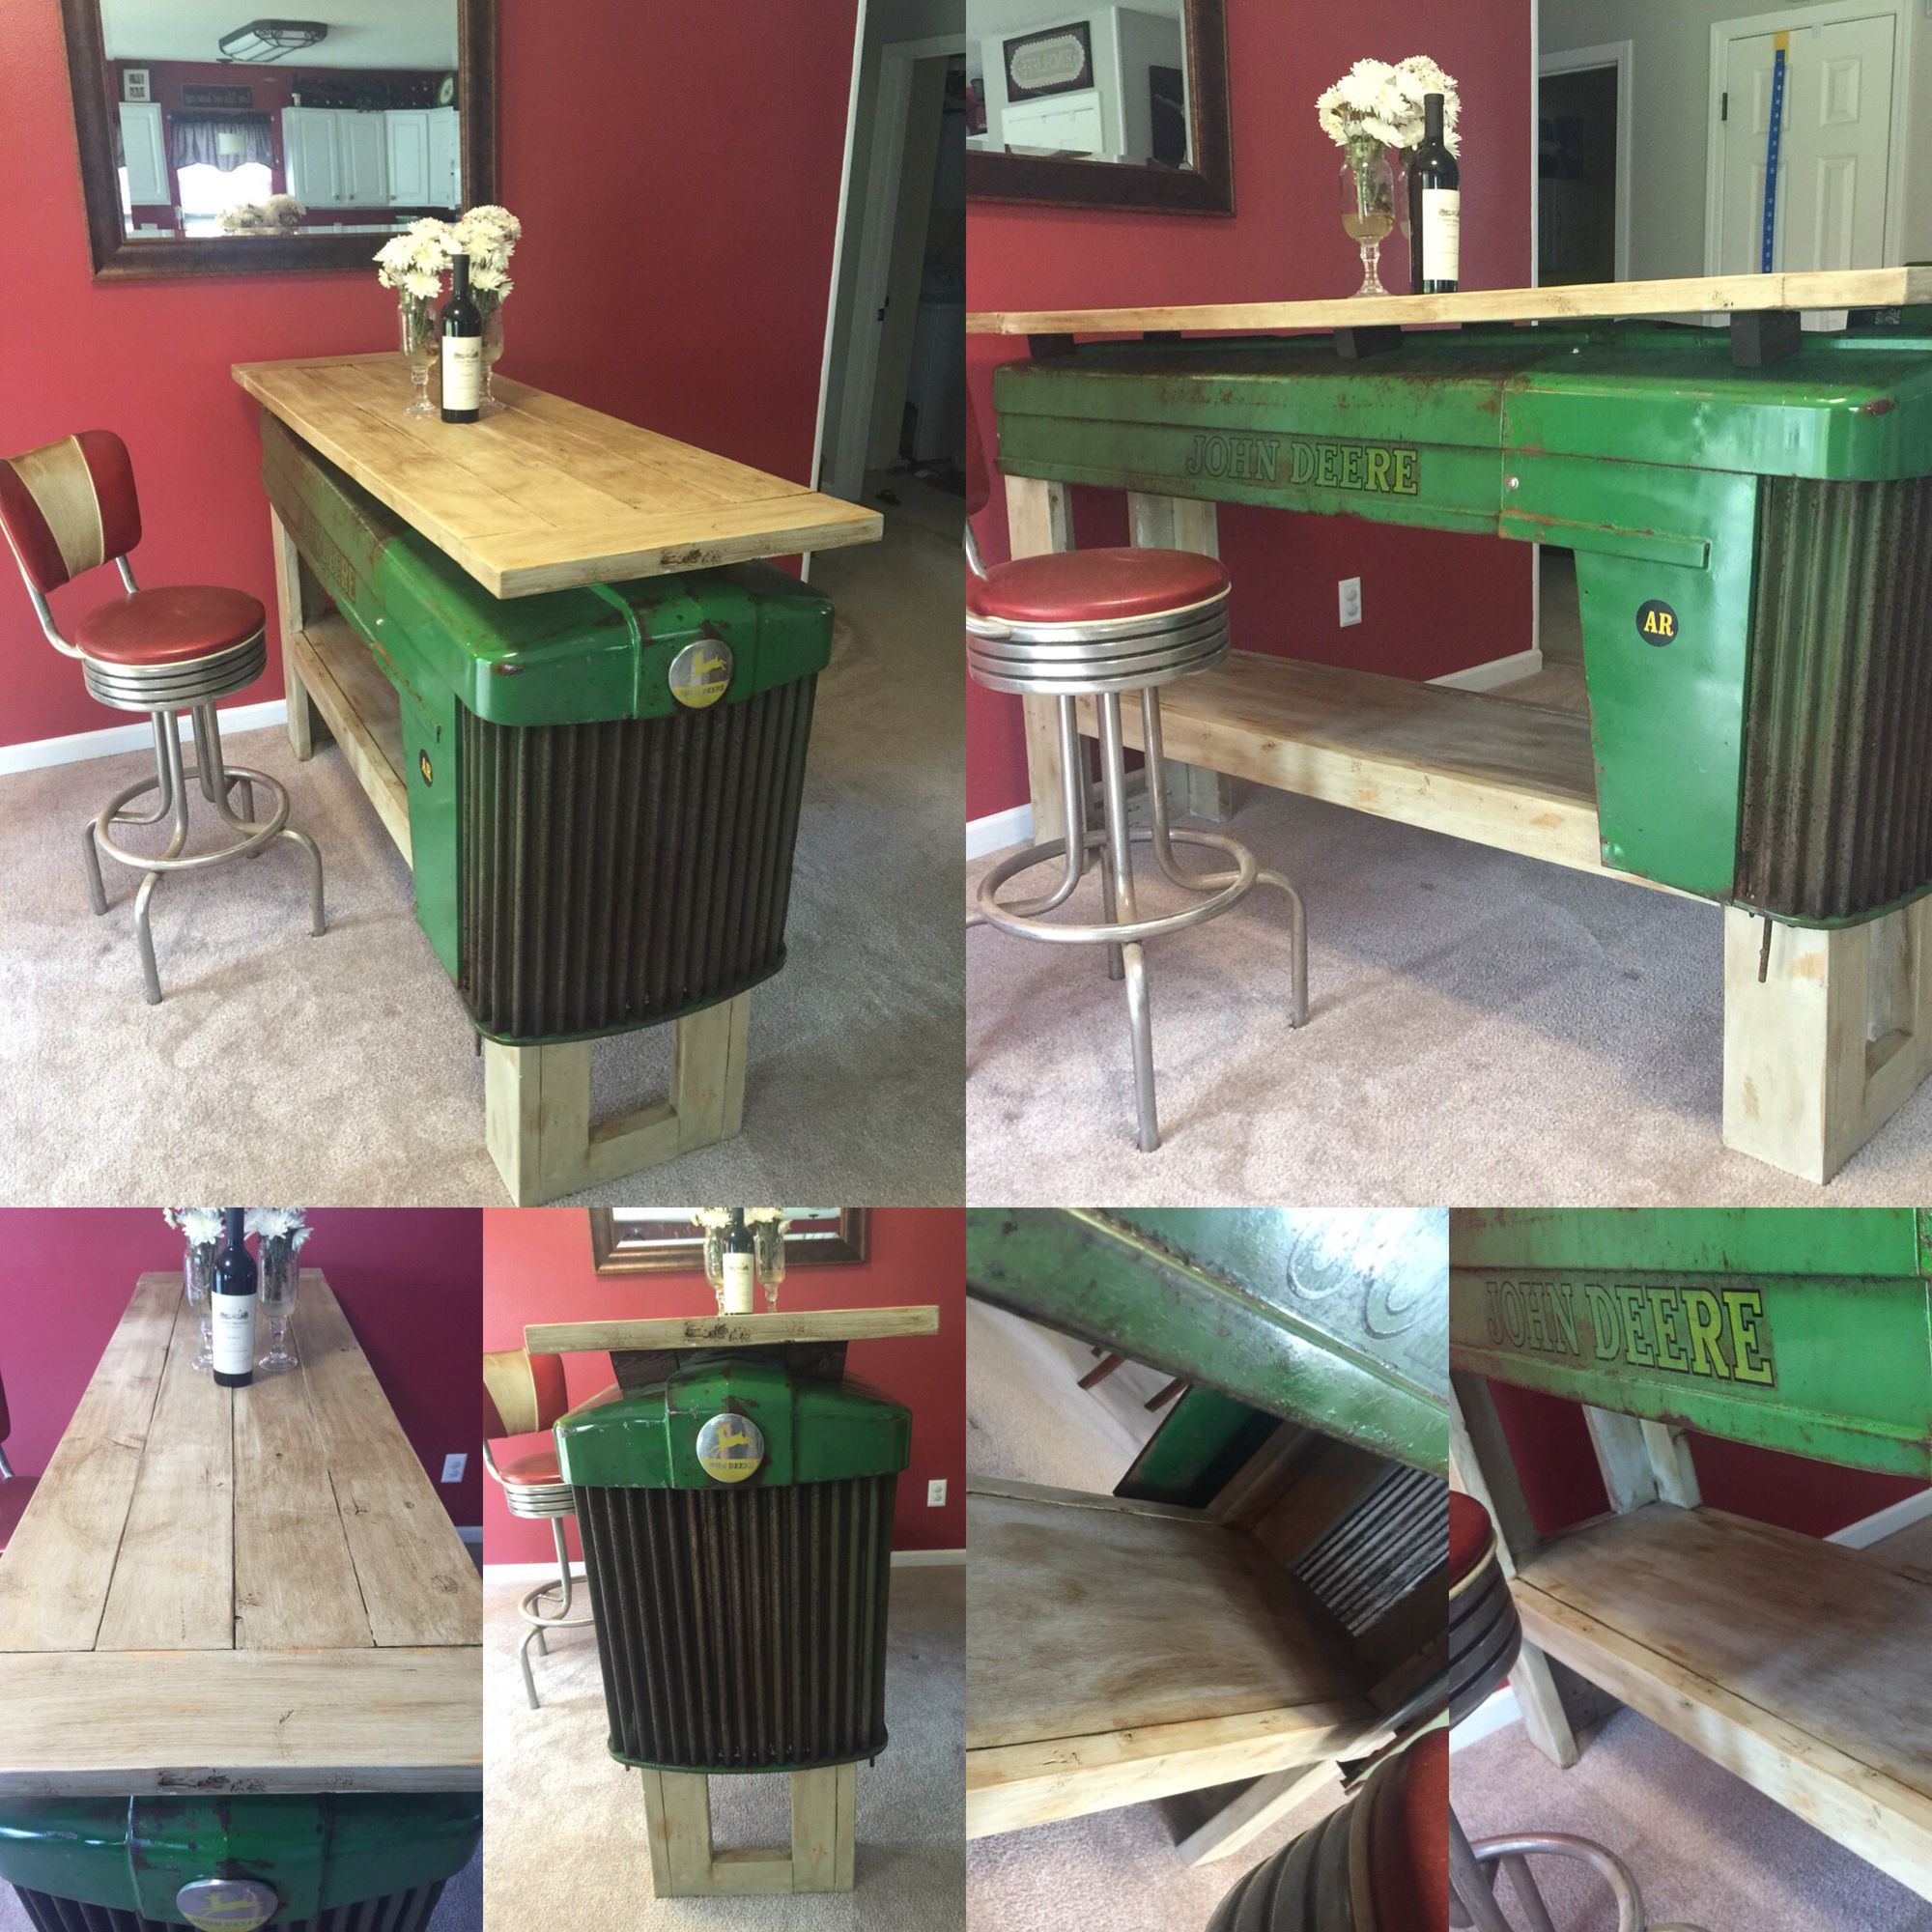 John Deere Kitchen Ideas: Handy Hinch Original John Deere Tractor Table. Handyhinch